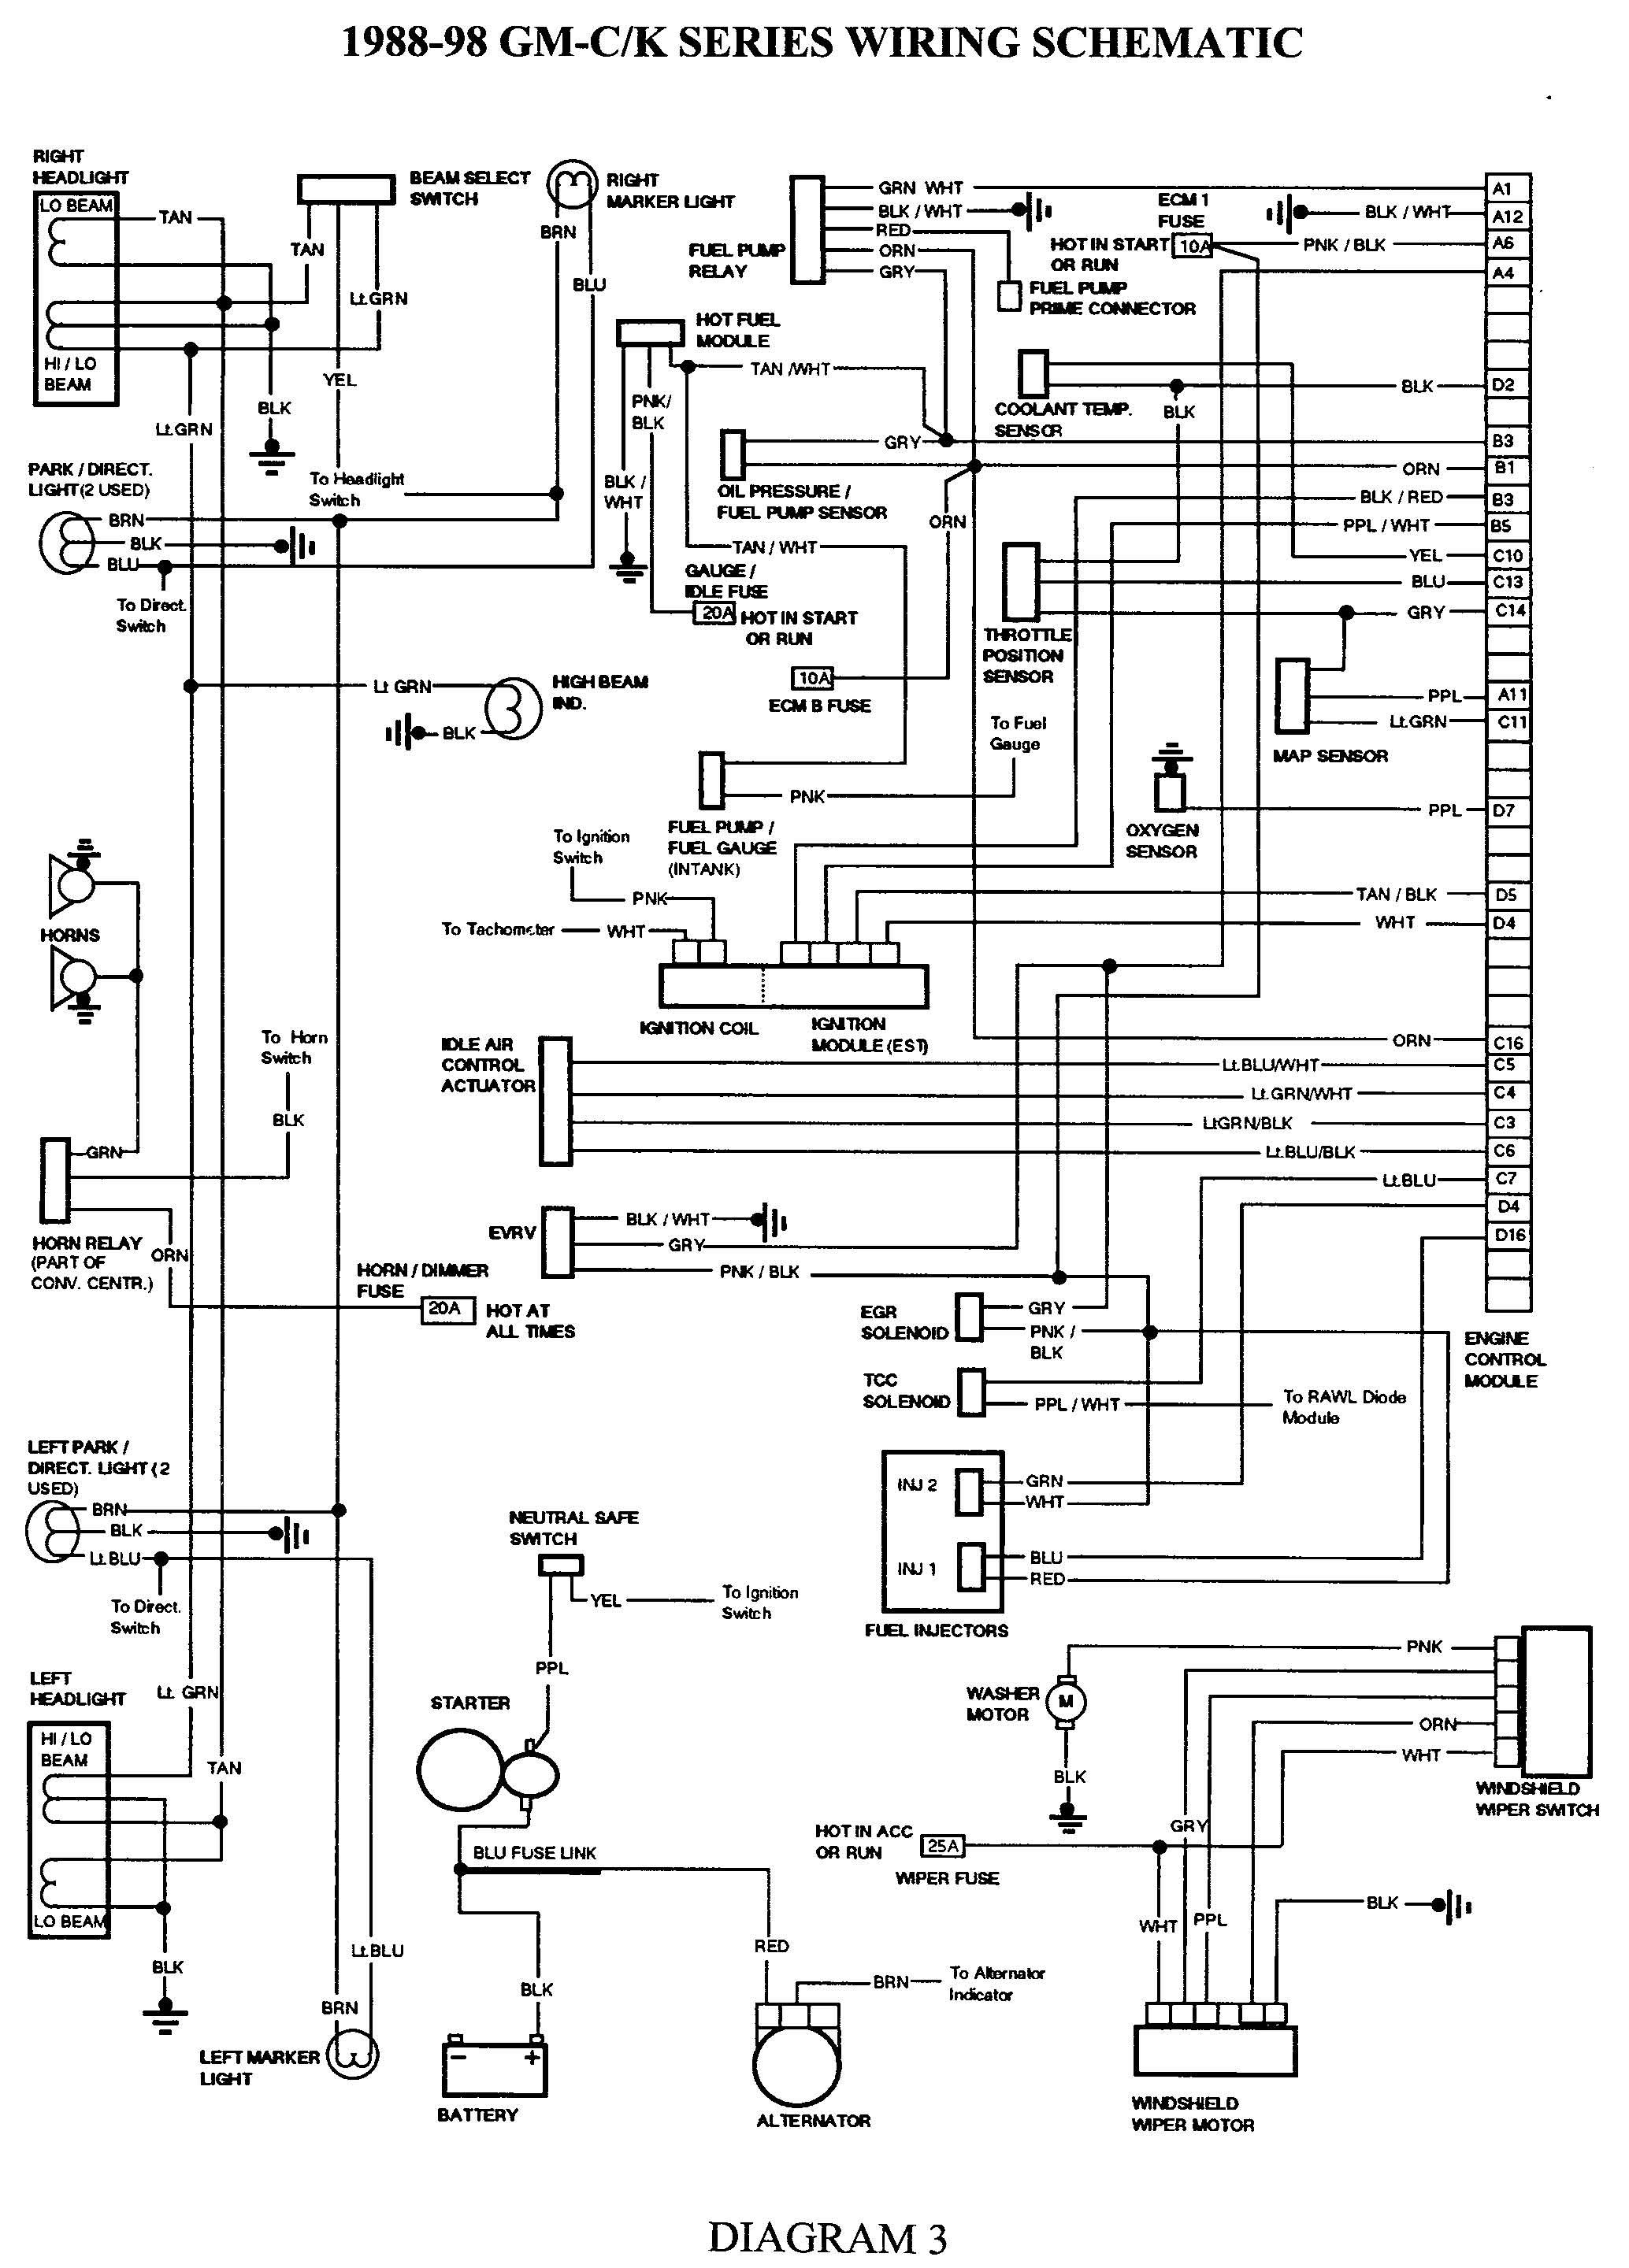 Chevy 1500 Wiring Diagram Schematics. GMC Truck Wiring Diagrams On Gm Harness Diagram 88 98 Kc 92 Chevy 1500. Chevrolet. 93 Chevy K1500 Engine Diagram At Scoala.co